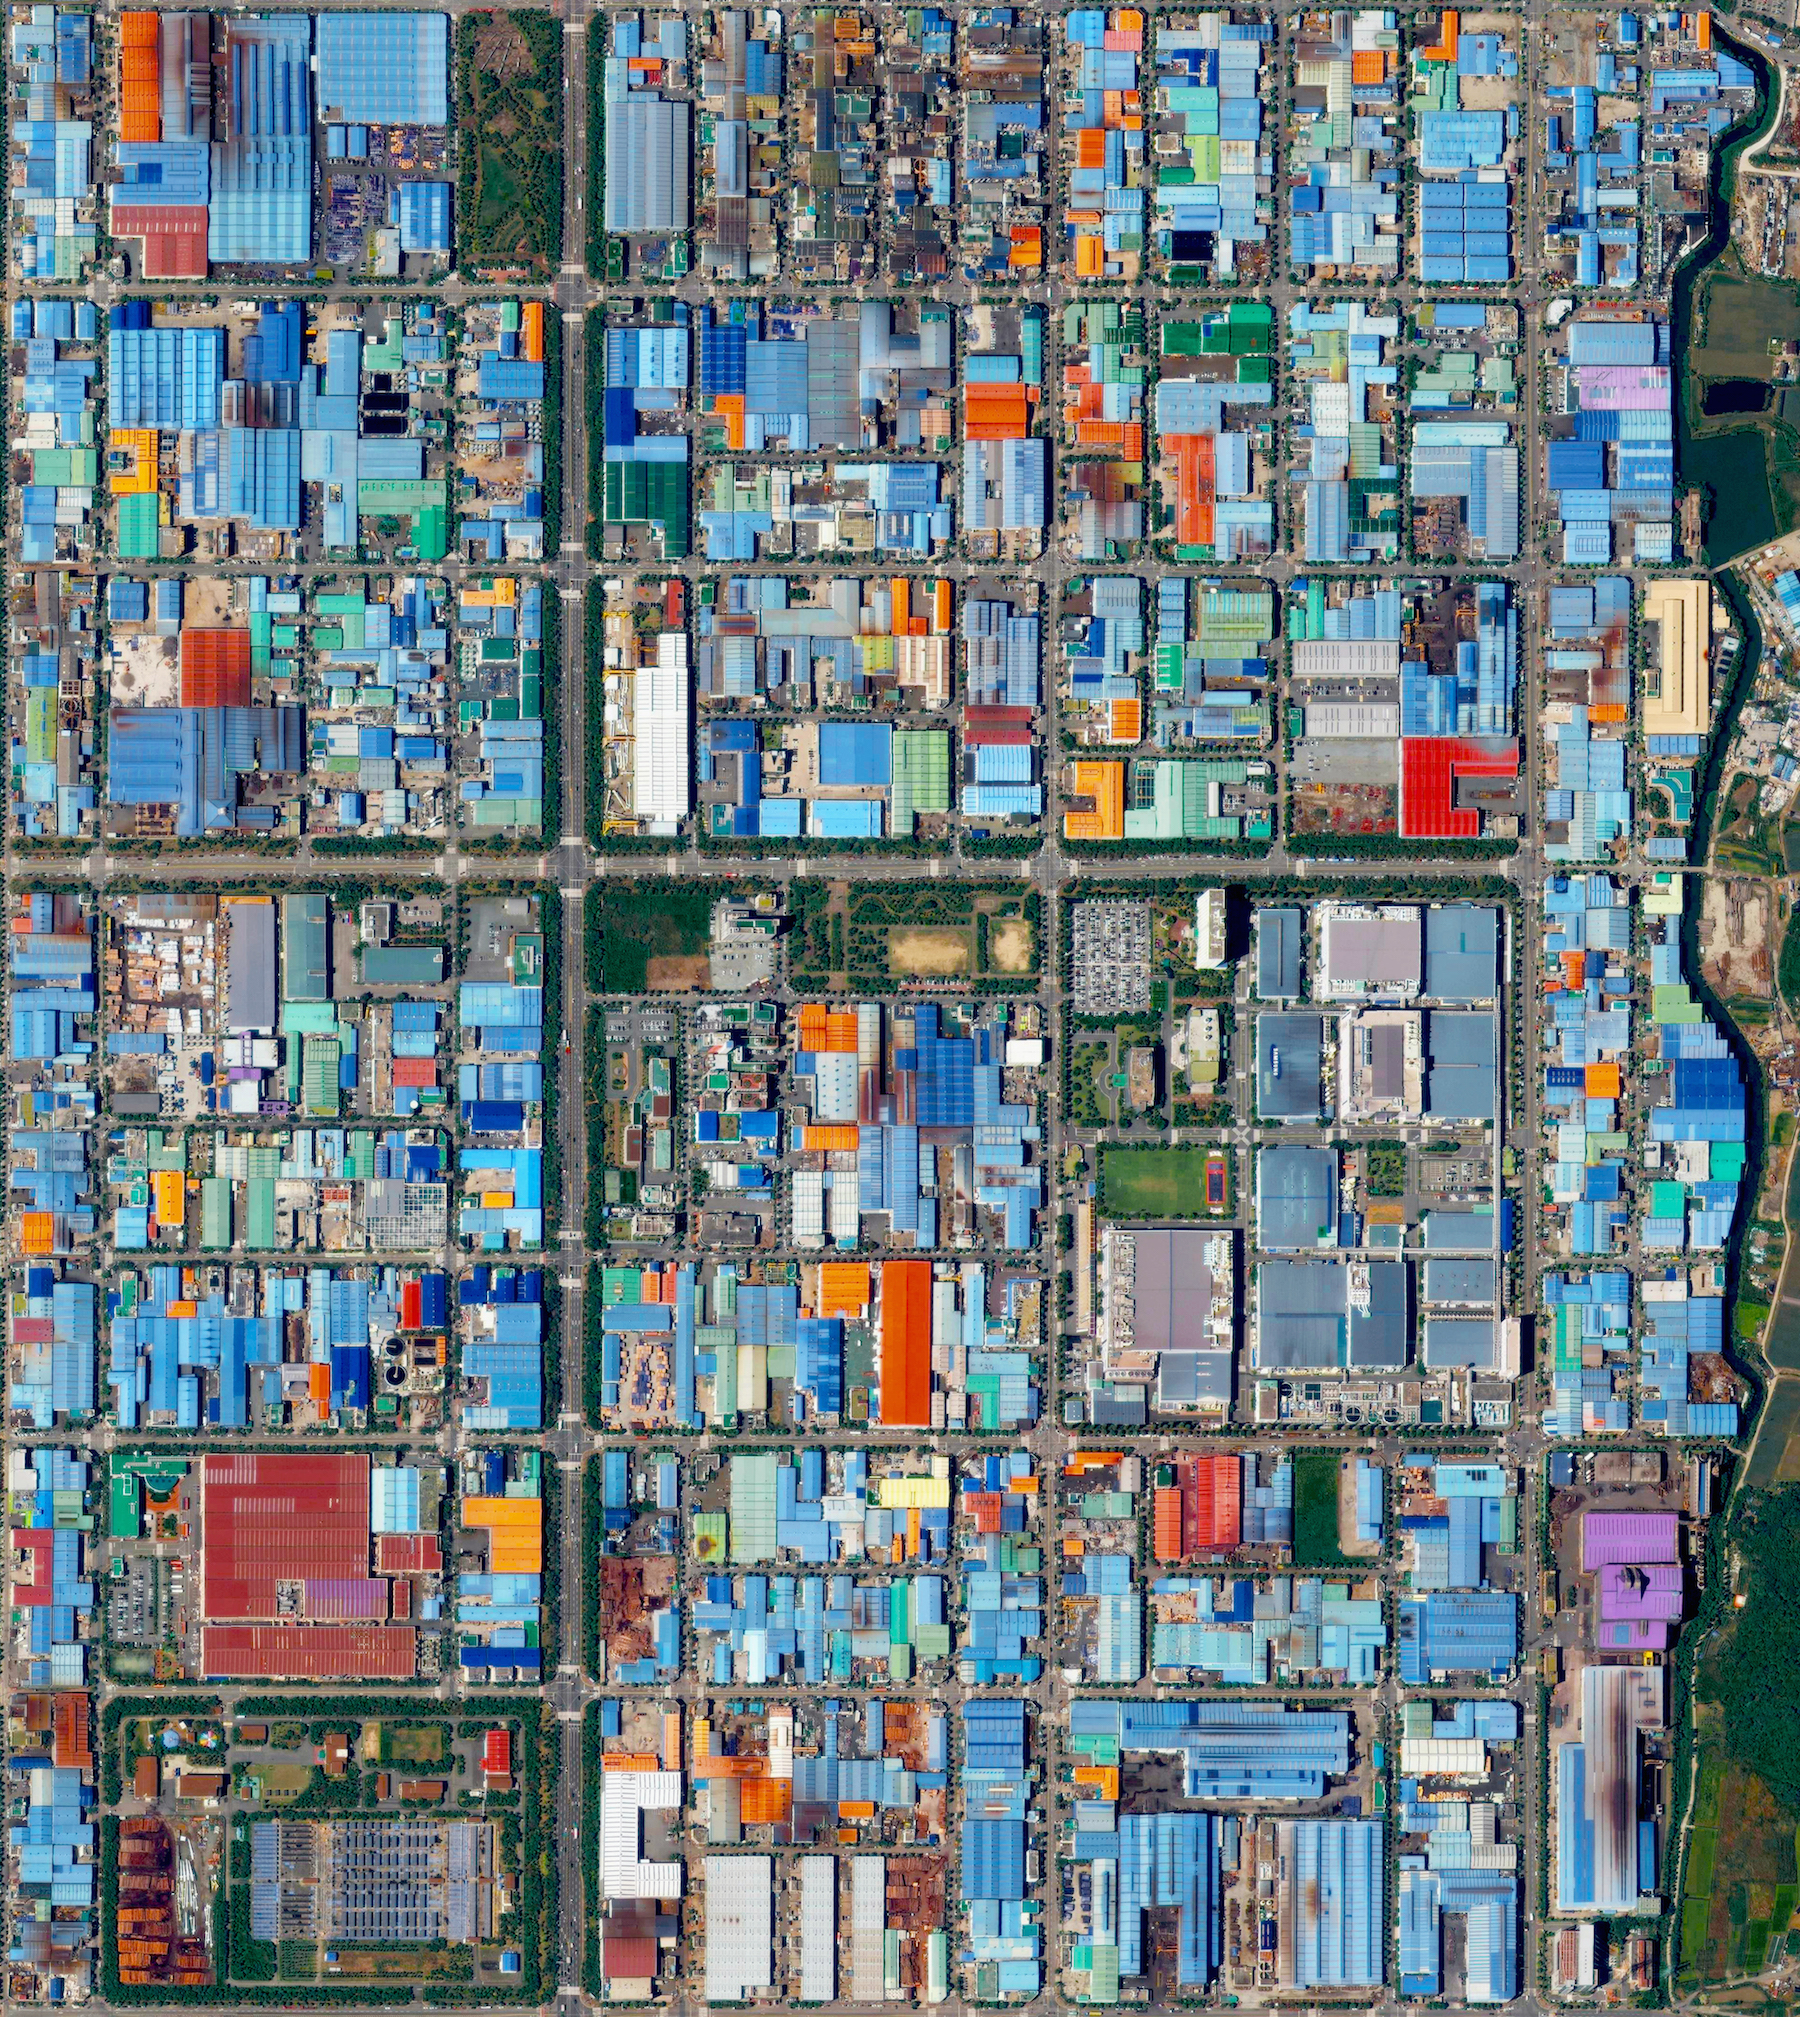 4/25/2016  Songjeong Dong  Busan, South Korea  35.0931874, 128.849009     The colorful roofs of Songjeong-dong - an industrial district in Busan, South Korea - are seen in this Overview. The striking colors that you see here result from the use of aluminum roofing, which is used for its low cost and longevity.